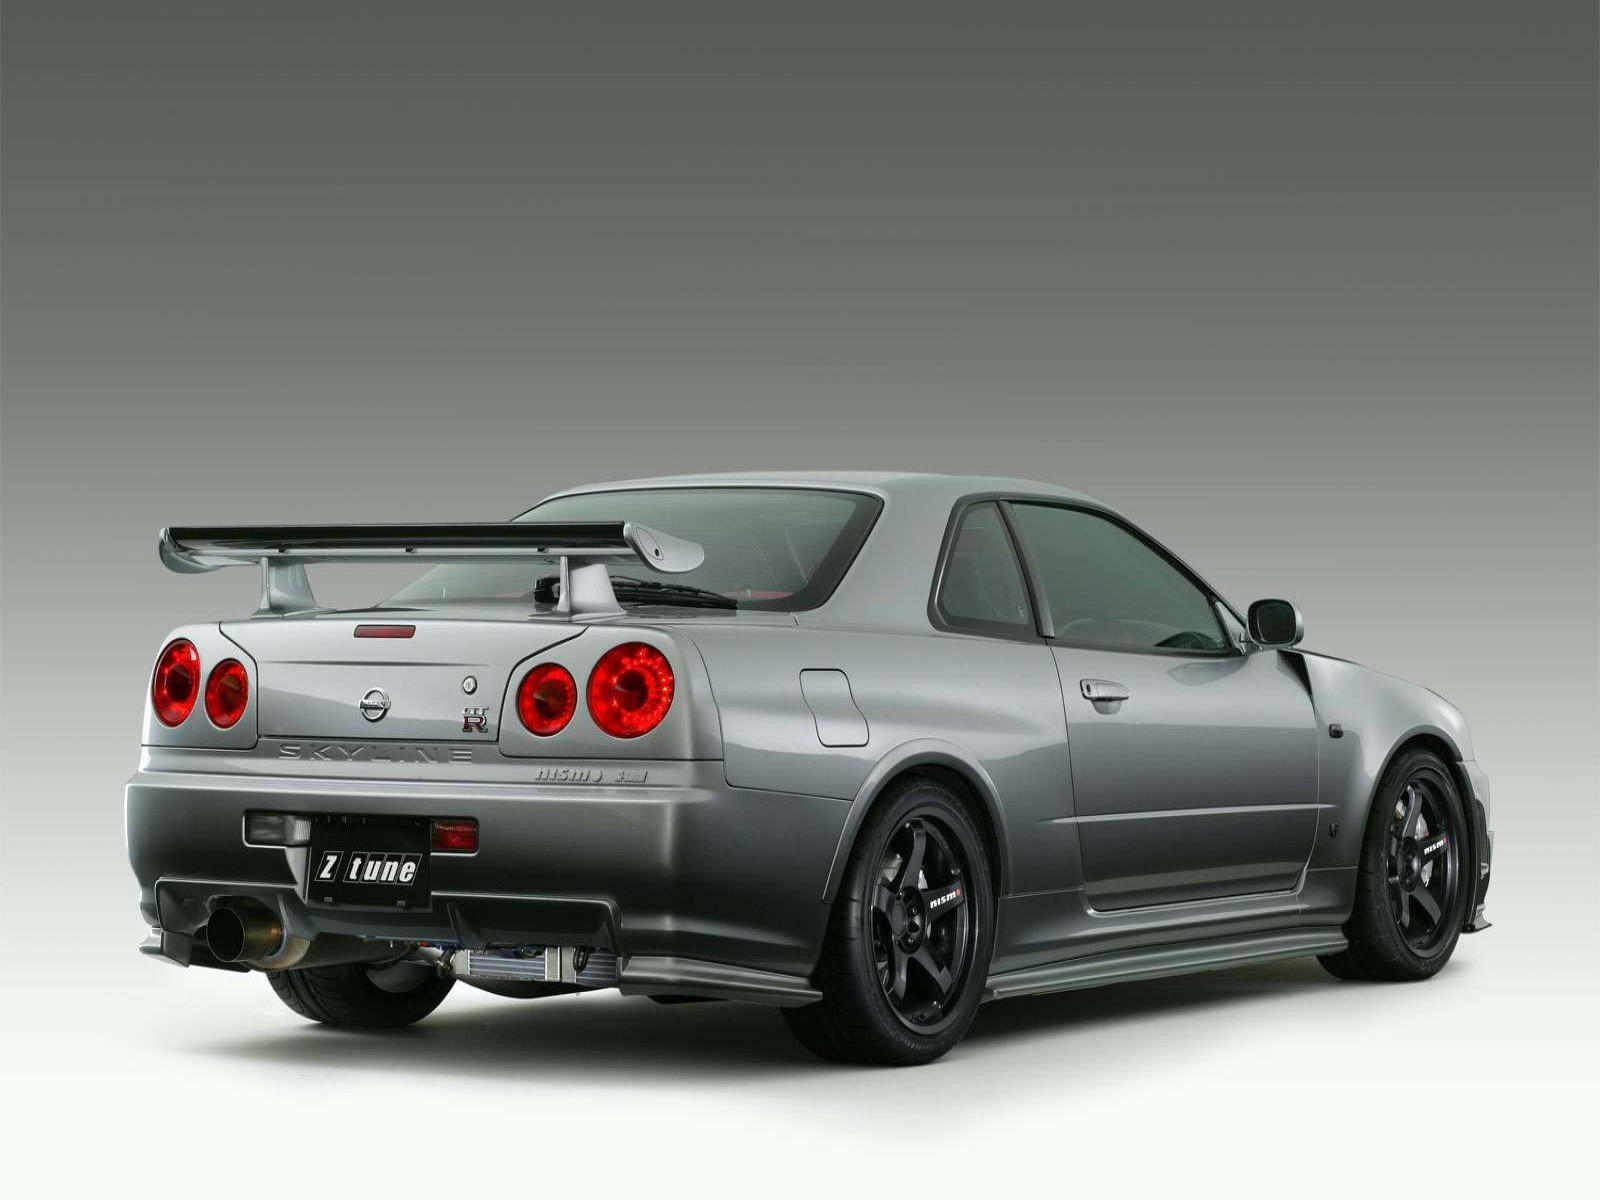 car pictures nismo nissan skyline r34 gtr z tune 2005. Black Bedroom Furniture Sets. Home Design Ideas